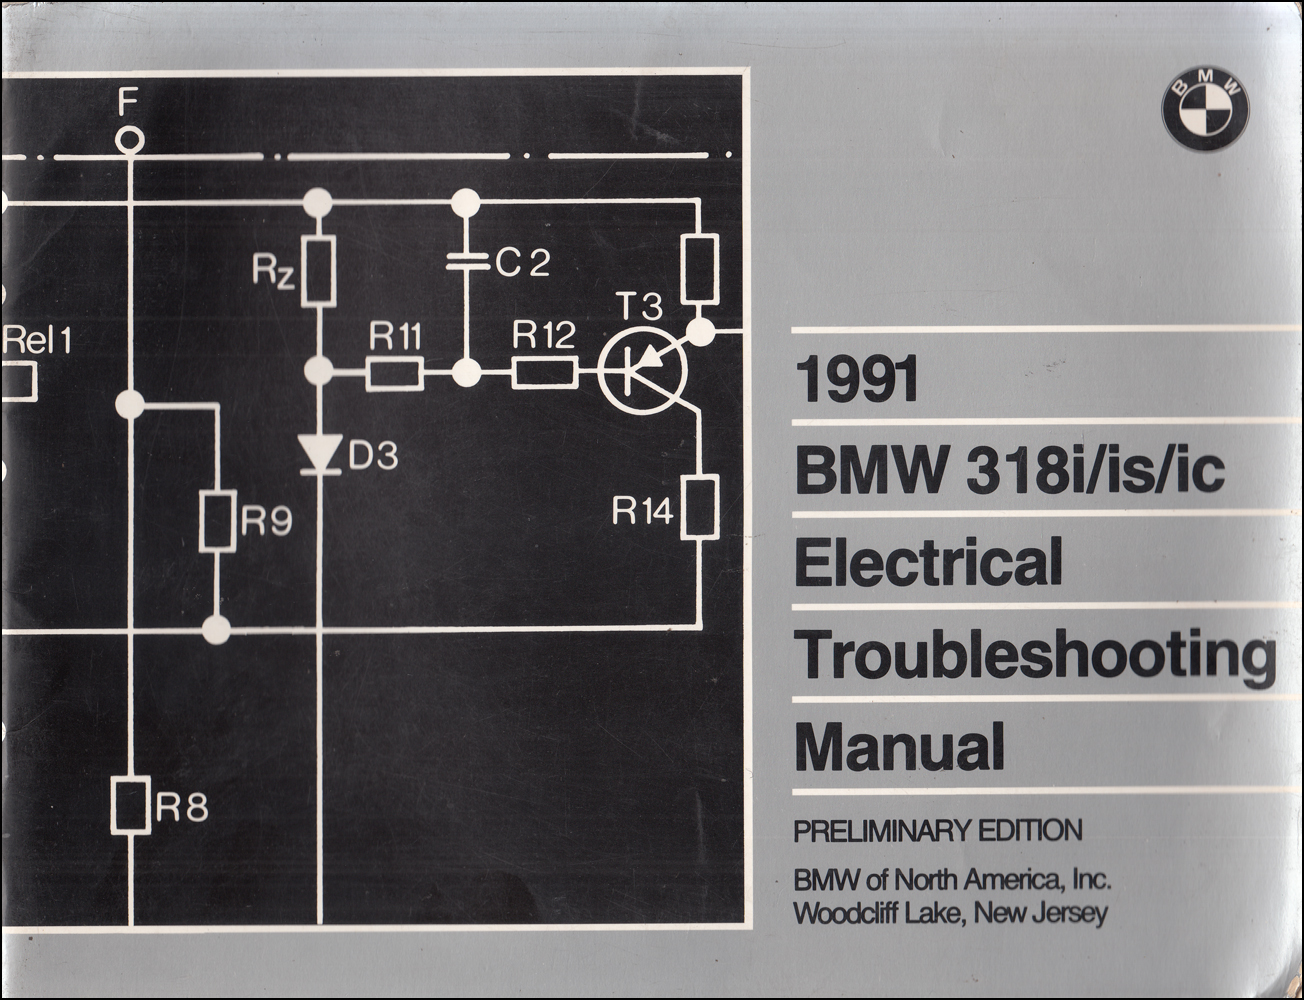 Circuit And Wiring Diagram 1992 Bmw E30 318ic Wiring Diagram